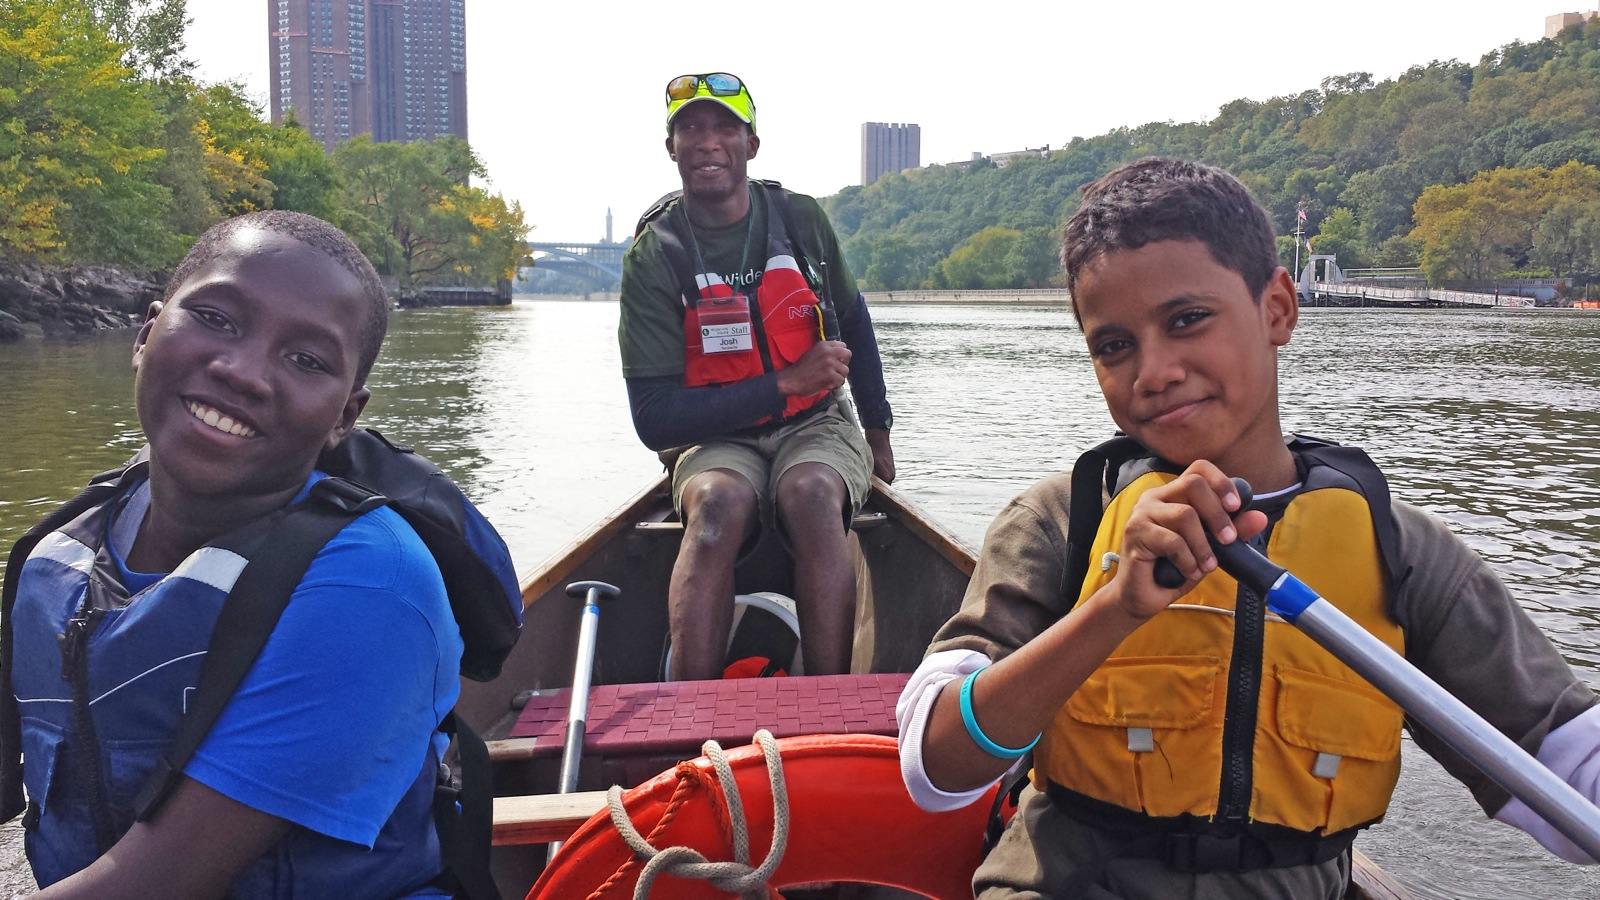 two boys in the middle smile for a photo with a staff member in the stern of the canoe on the Harlem river